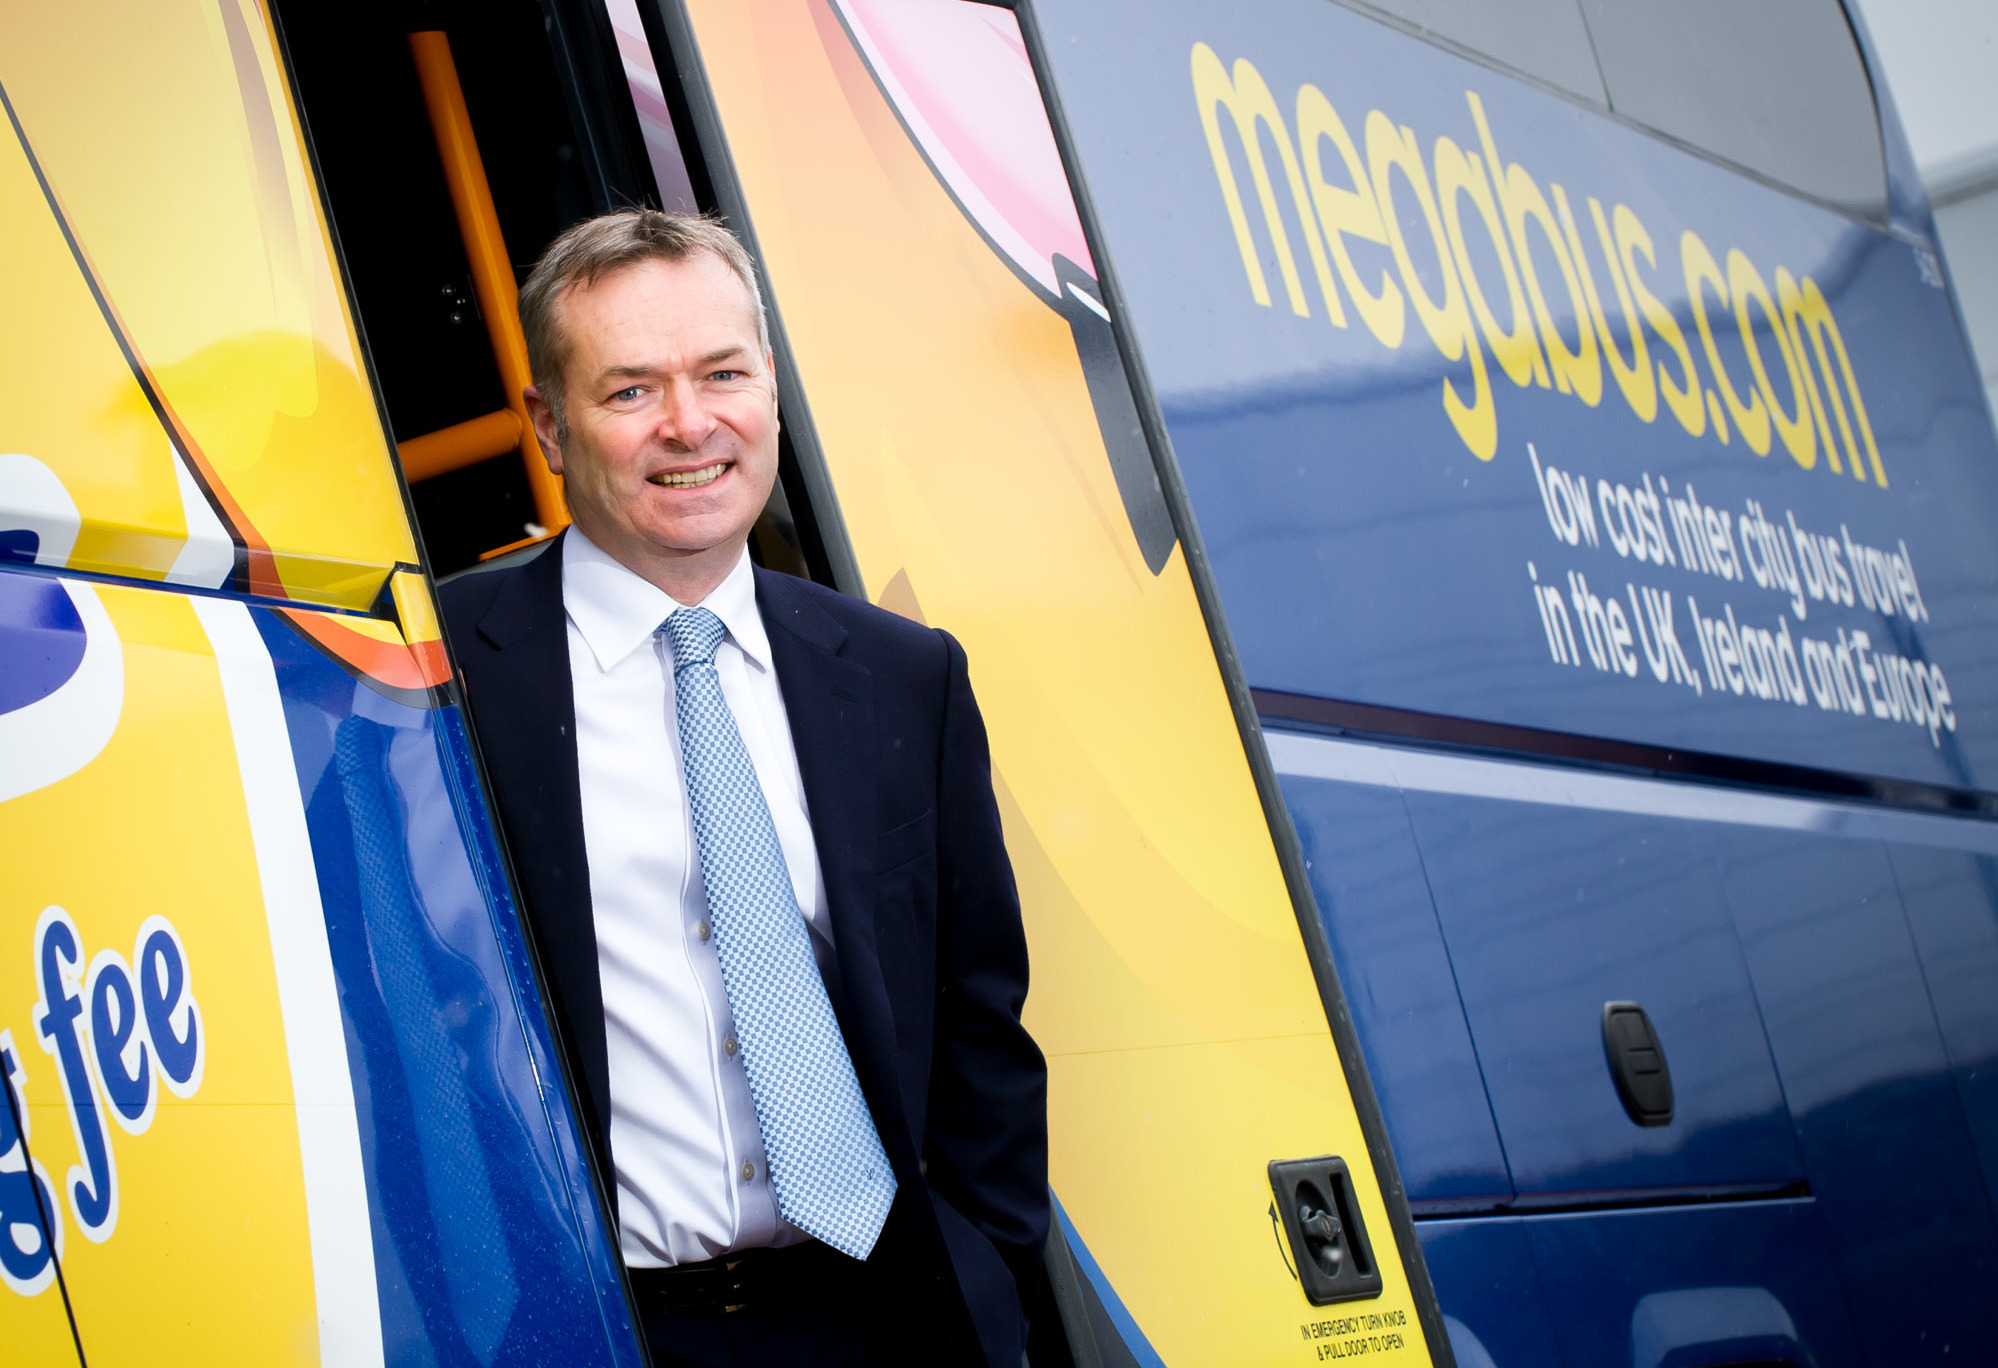 Martin Griffiths, Stagecoach chief executive, said the decision was 'extremely concerning'